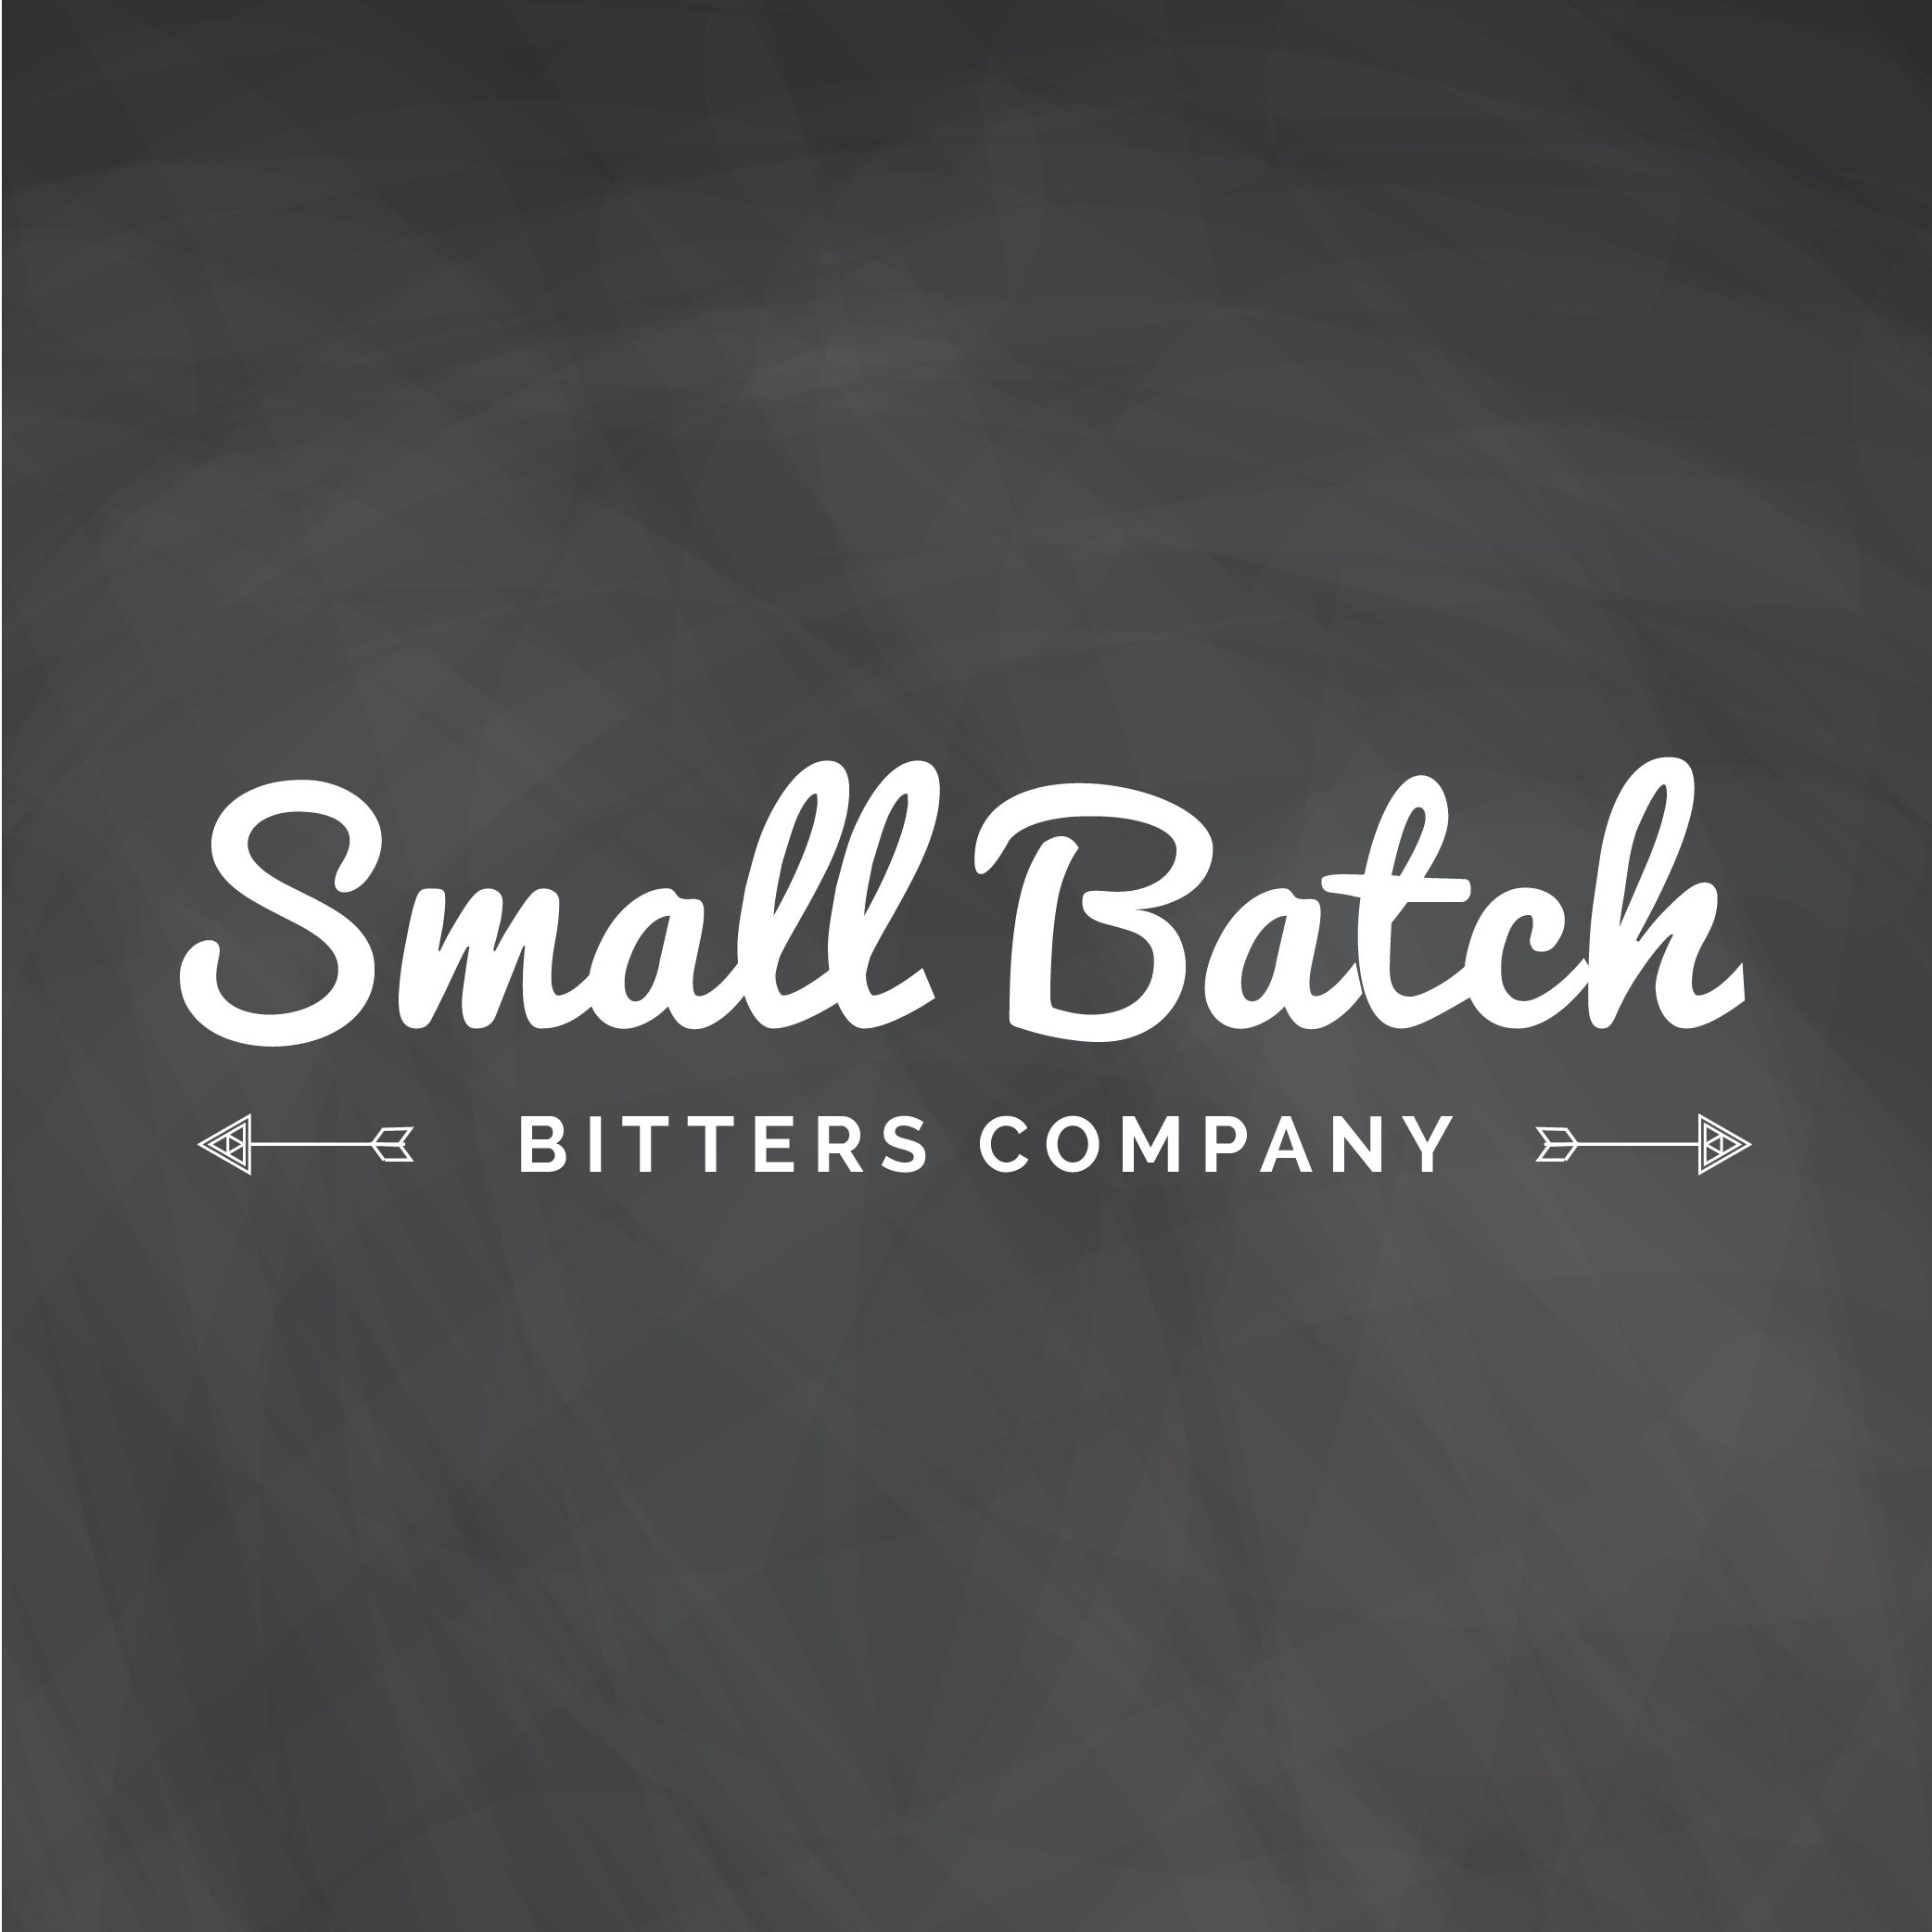 Web_Images_Master_Small_Batch_Bitters.png